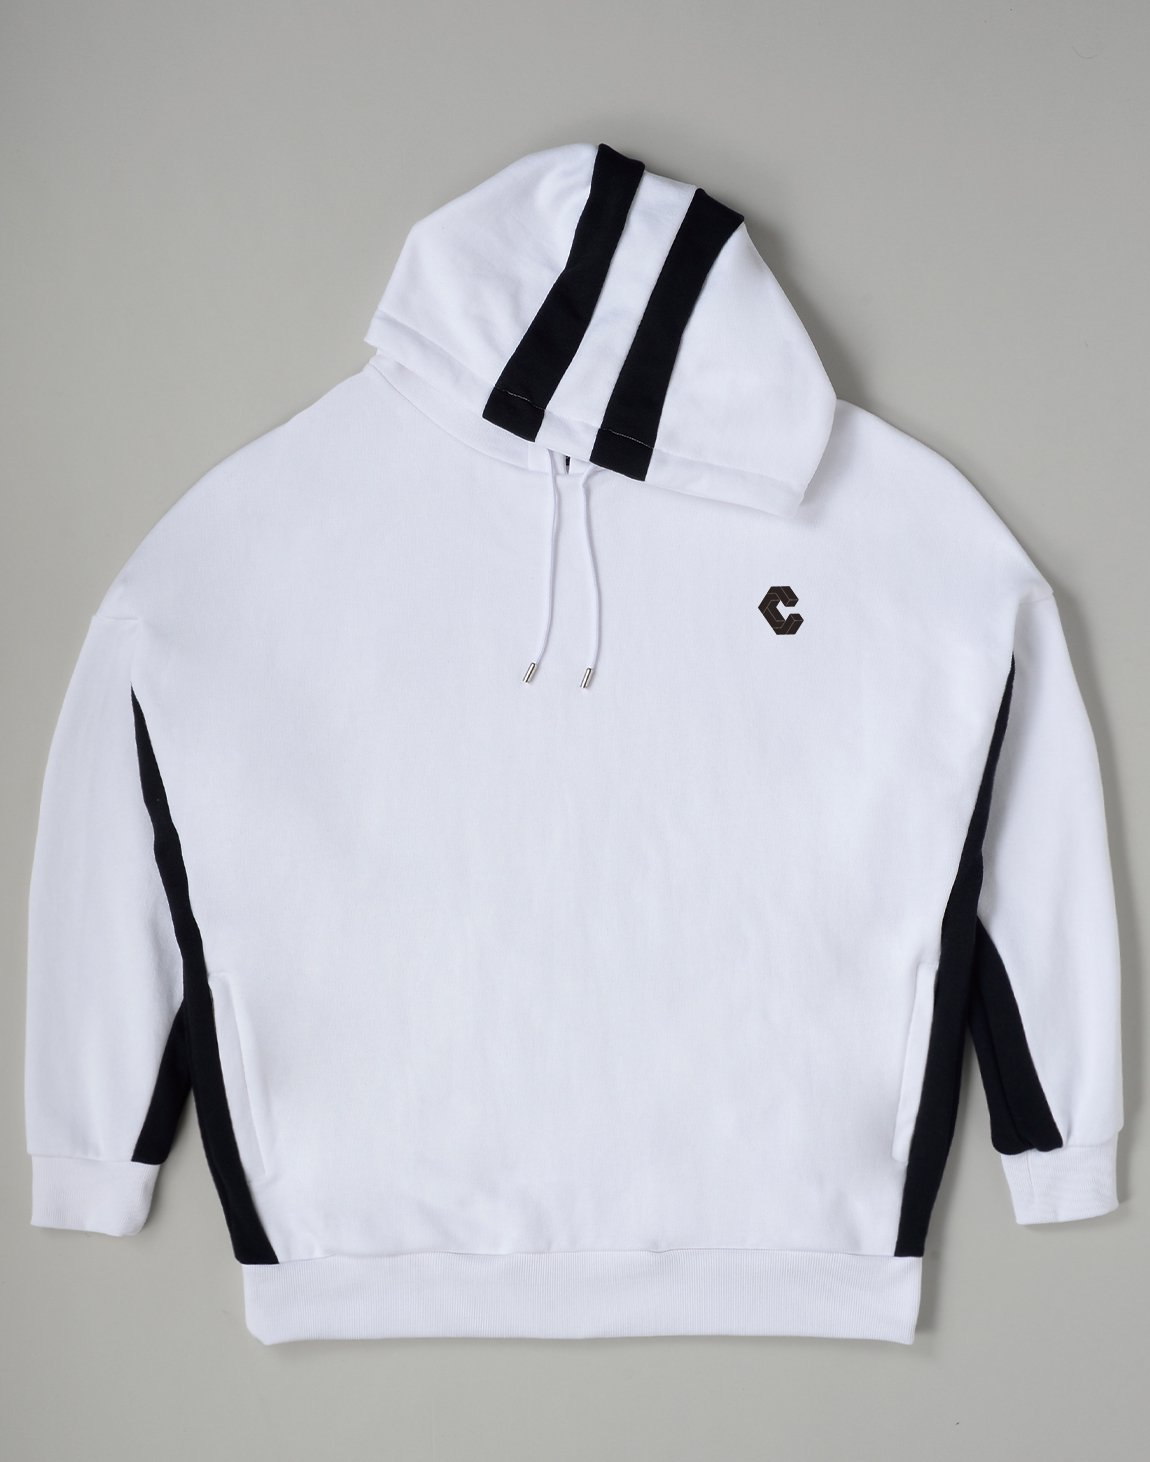 <img class='new_mark_img1' src='https://img.shop-pro.jp/img/new/icons1.gif' style='border:none;display:inline;margin:0px;padding:0px;width:auto;' />CRONOS 2STRIPE HOODIE【WHITE】